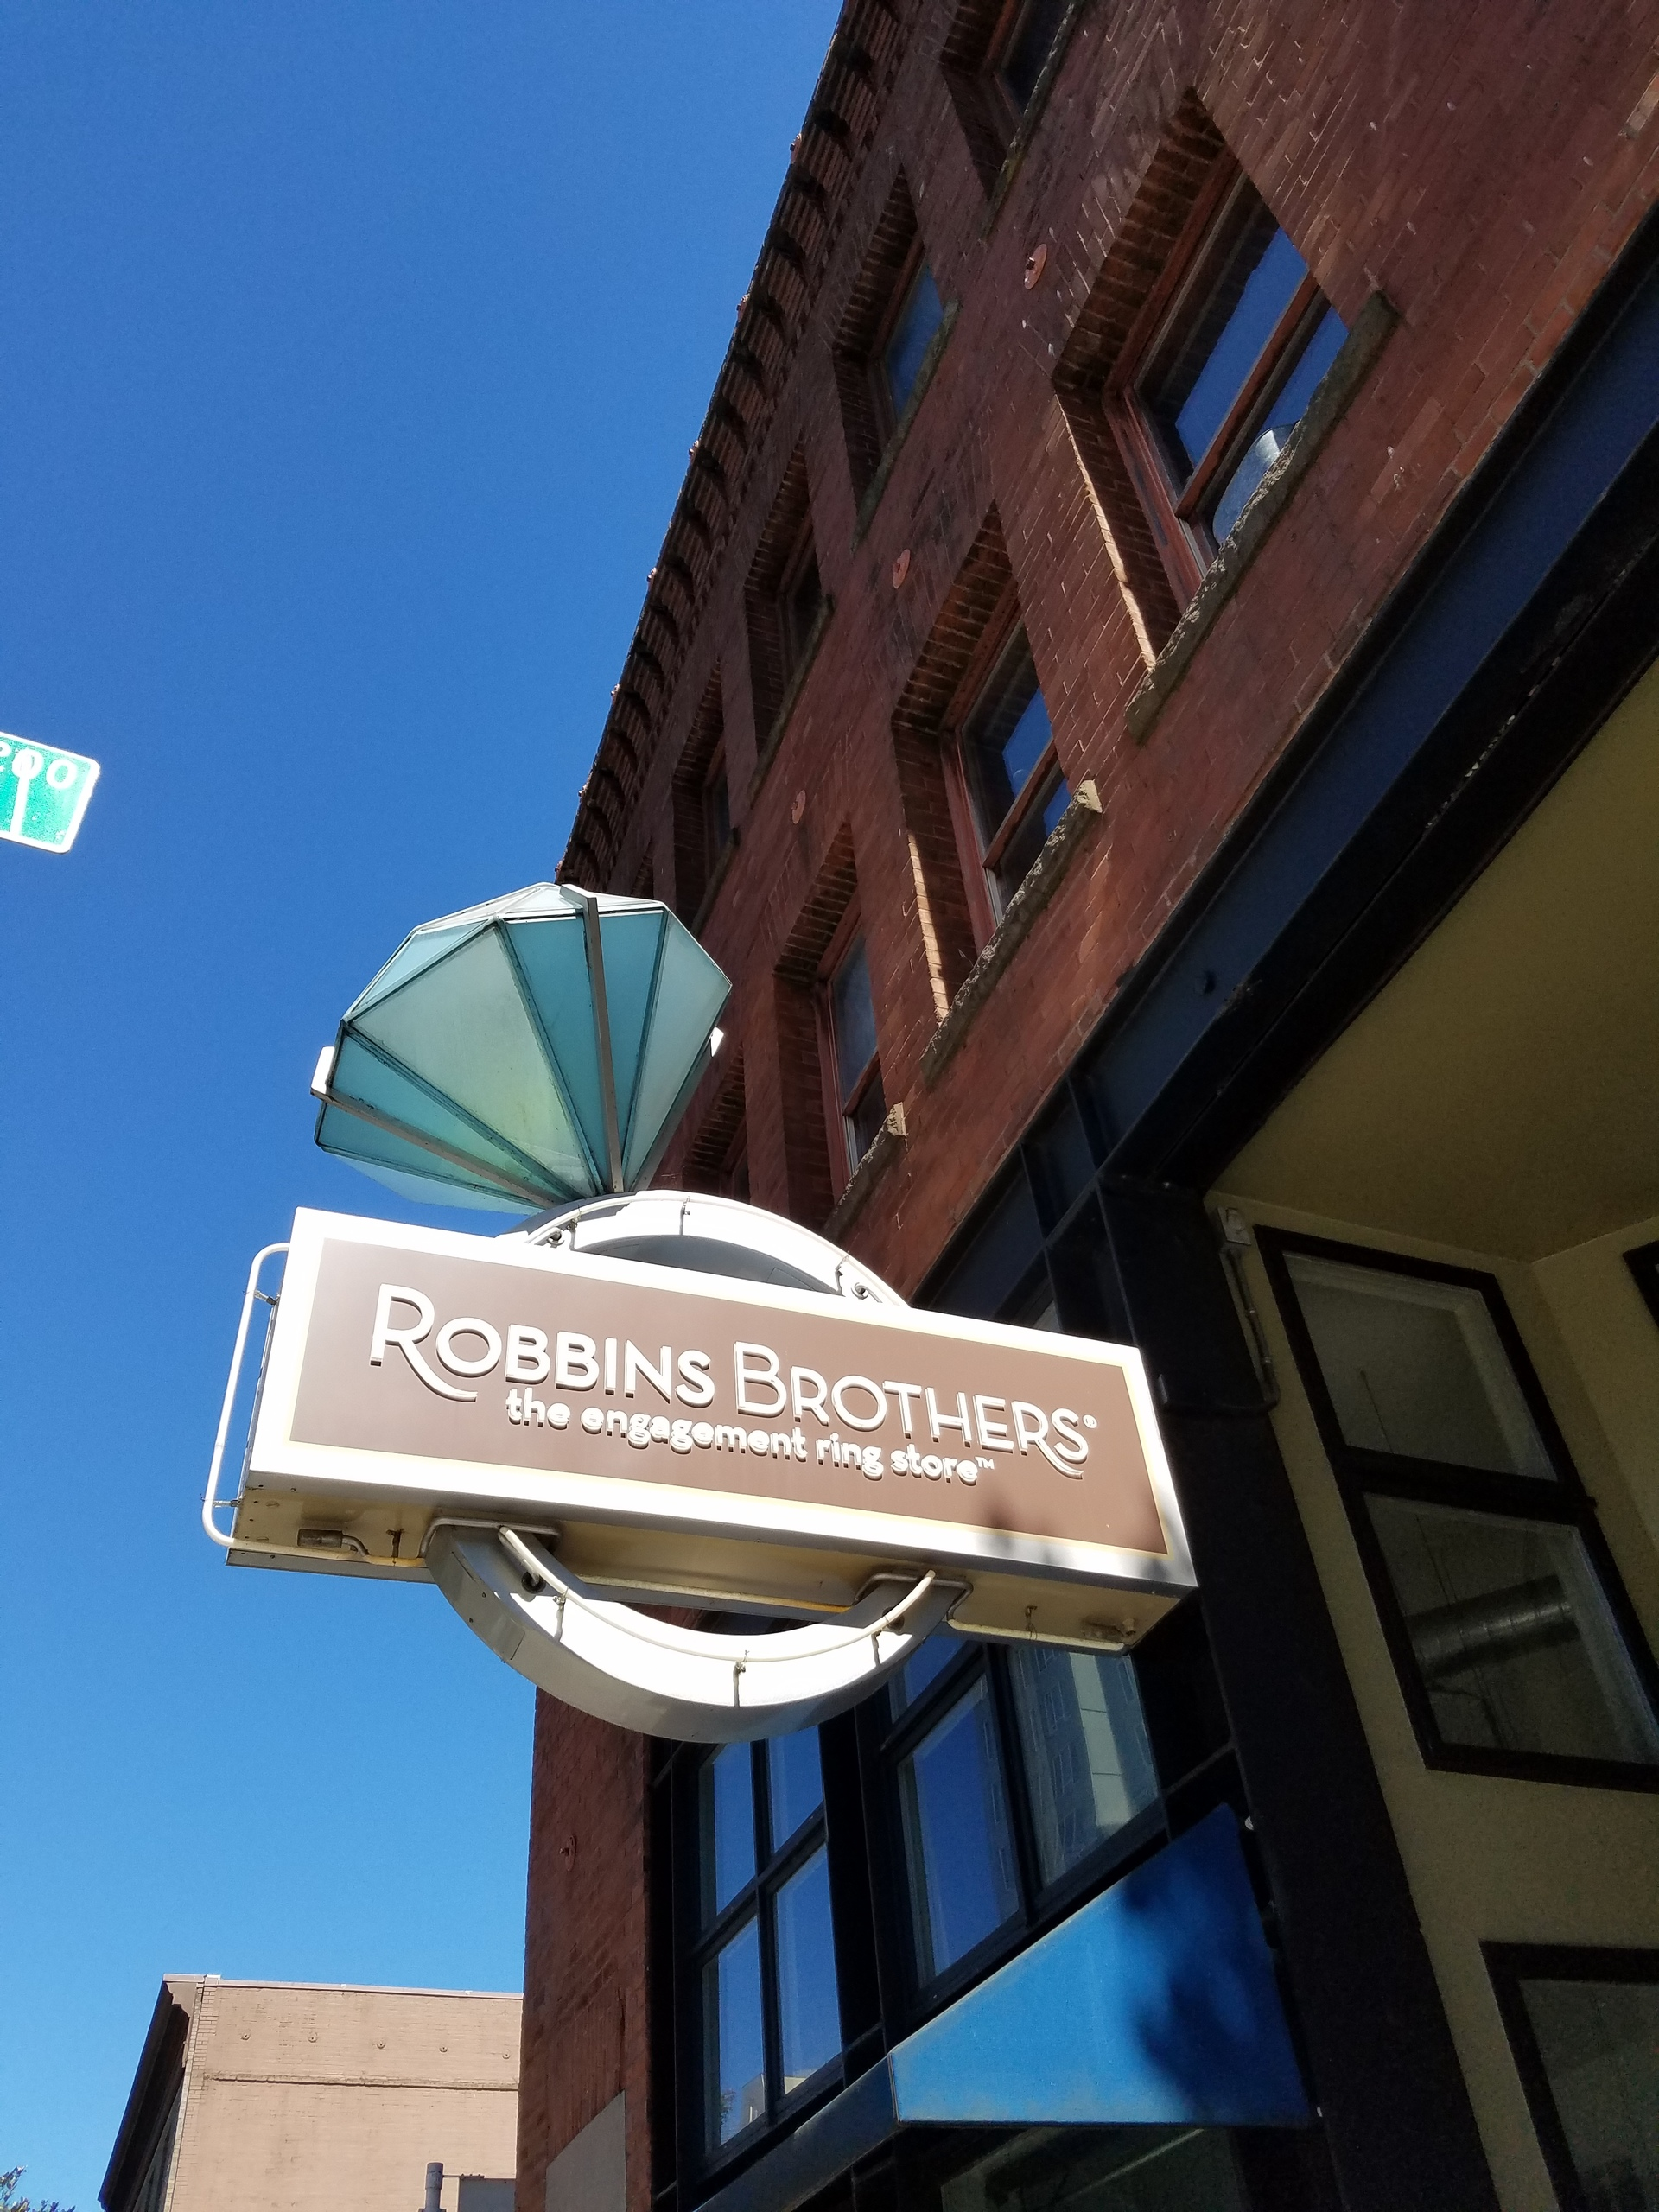 Robins Brothers Store Belltown | elise81, city, business, ee robins